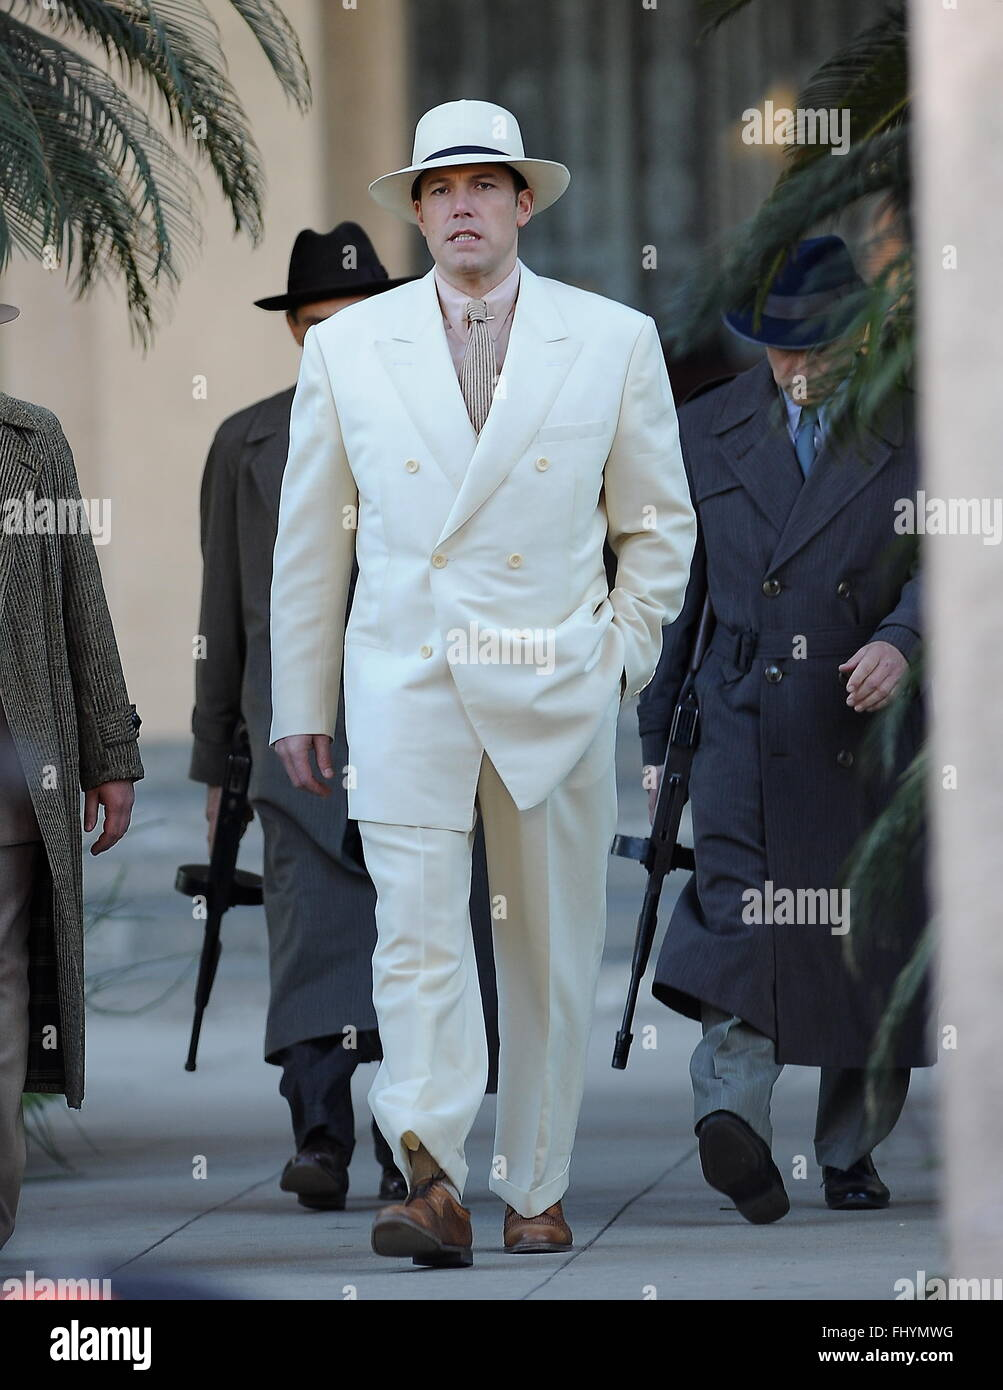 Actor Ben Affleck gets into his mobster character on the set of 'Live By Night' filming in Pasadena Ca. - Stock Image